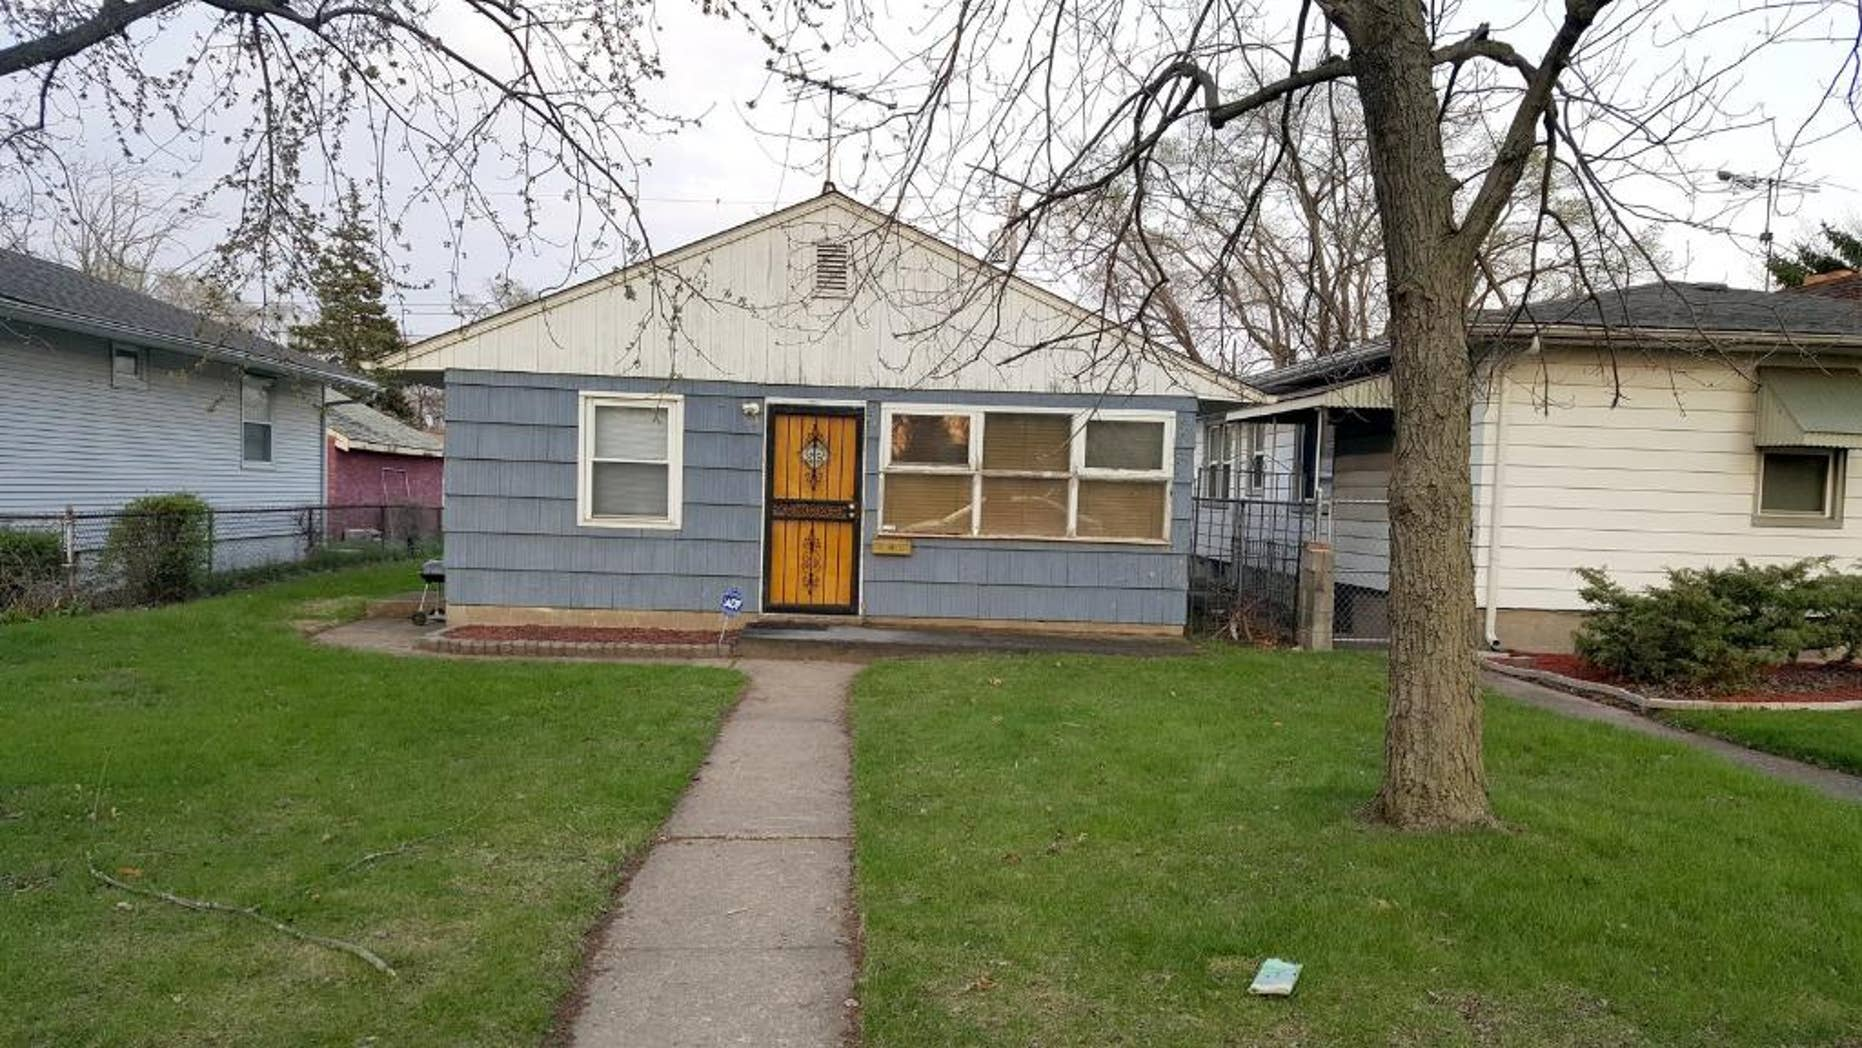 This Tuesday, April 21, 205 photo shows the home where the body of a woman was found by police in Gary, Ind.  Madison County prosecutors filed paperwork in Circuit Court on Monday charging Geraldine Jones, 36, of Gary in the death of 23-year-old Samantha Fleming of Anderson.  Police investigating Fleming's disappearance on Friday found her body in Jones' home in Gary, about 165 miles northwest of Anderson. When police arrived Fleming's 3-week-old daughter was being held by Jones' sister, who told police she had been caring for her sister's child while her sister was in Texas. Police determined the child was Fleming's and the baby was returned to relatives in Indianapolis.   (Michelle L. Quinn/Chicago Tribune via AP) MANDATORY CREDIT CHICAGO TRIBUNE; CHICAGO SUN-TIMES OUT; DAILY HERALD OUT; NORTHWEST HERALD OUT; THE HERALD-NEWS OUT; DAILY CHRONICLE OUT; THE TIMES OF NORTHWEST INDIANA OUT; TV OUT; MAGS OUT; NO SALES